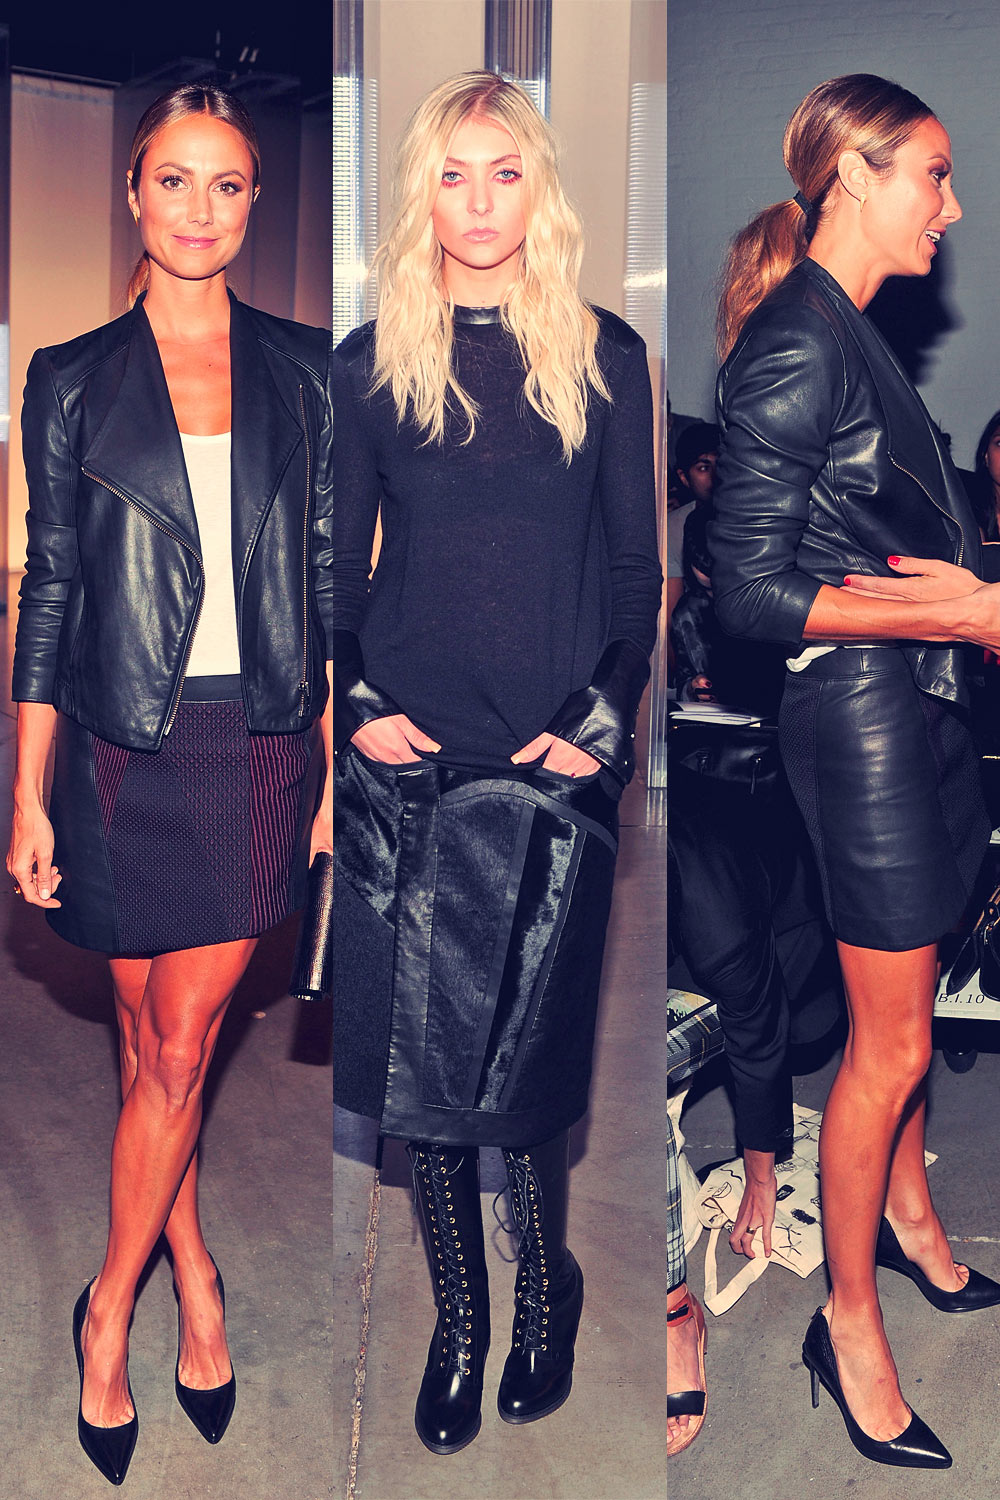 Stacy Keibler, Molly Sims and Taylor Momsen attend the Helmut Lang show